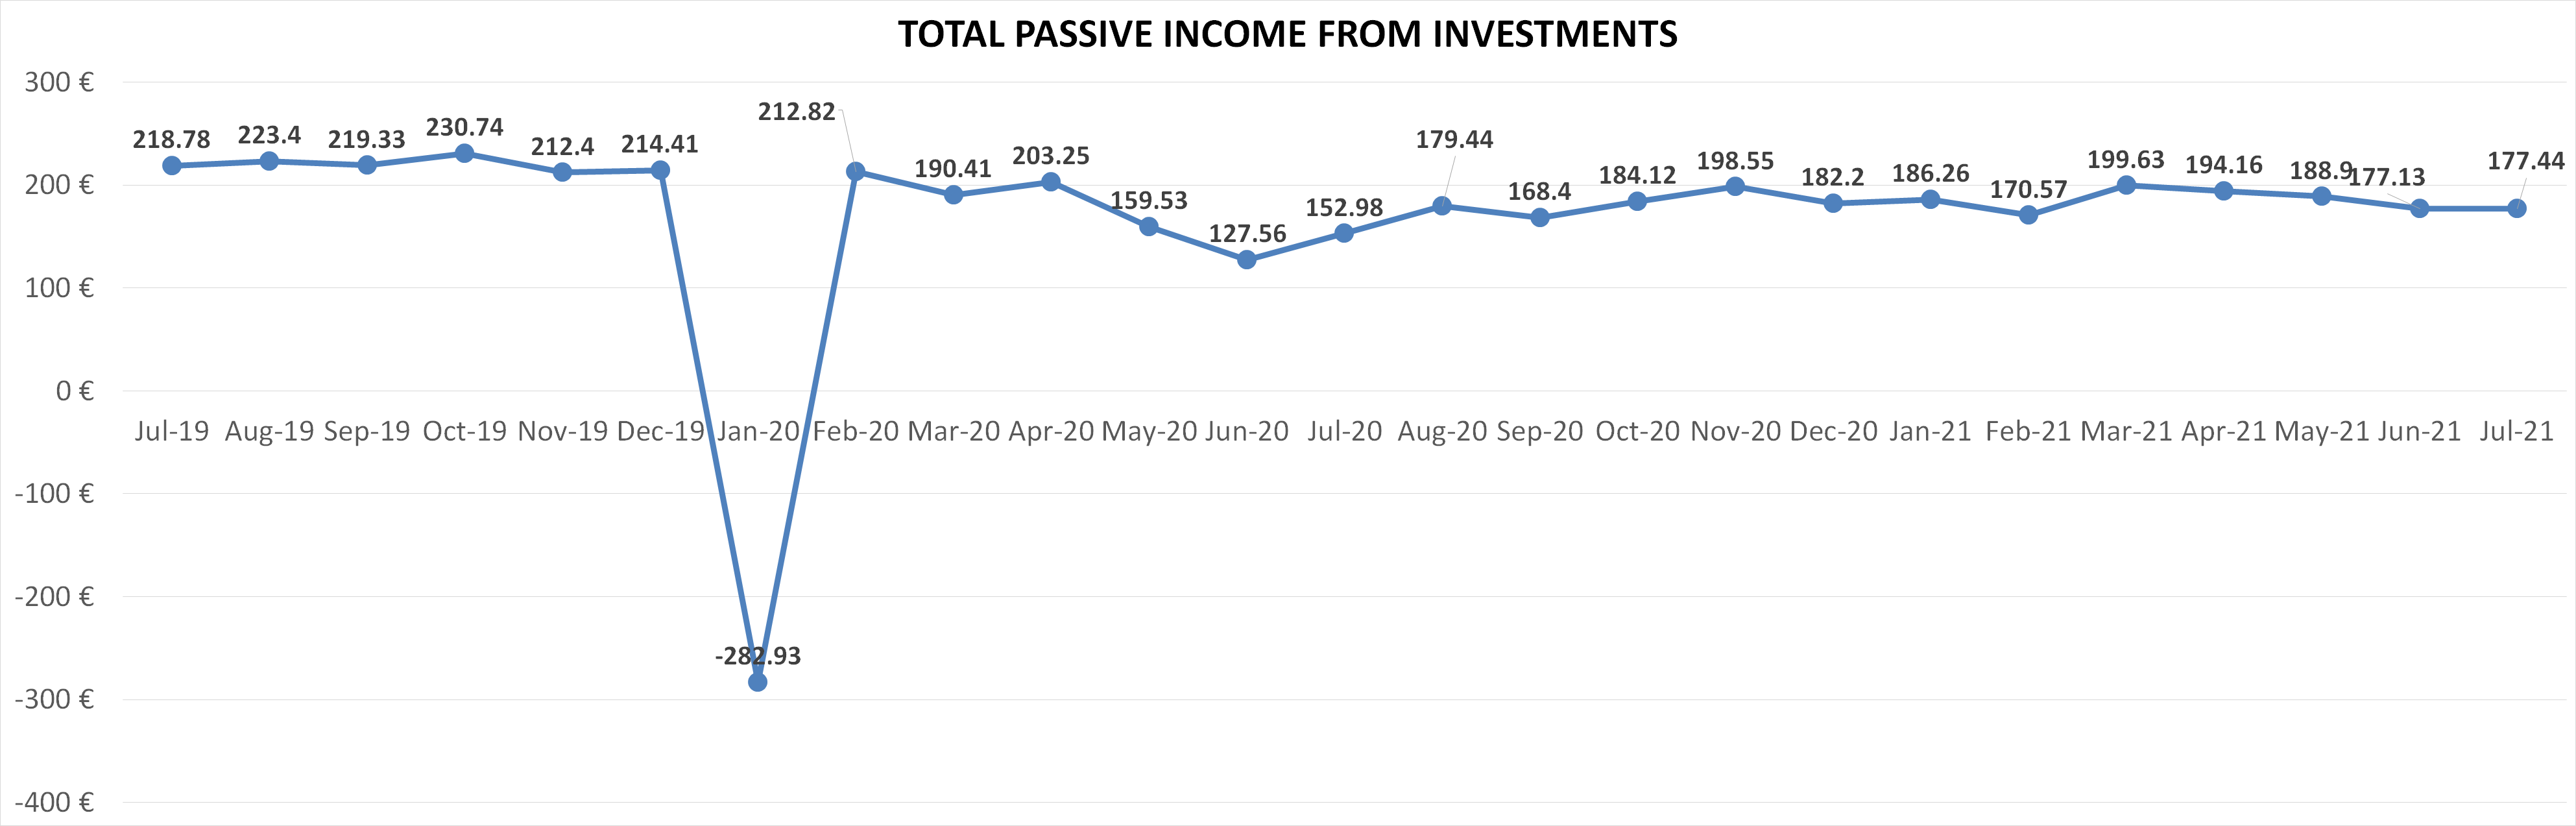 Total passive income from investments july 2021